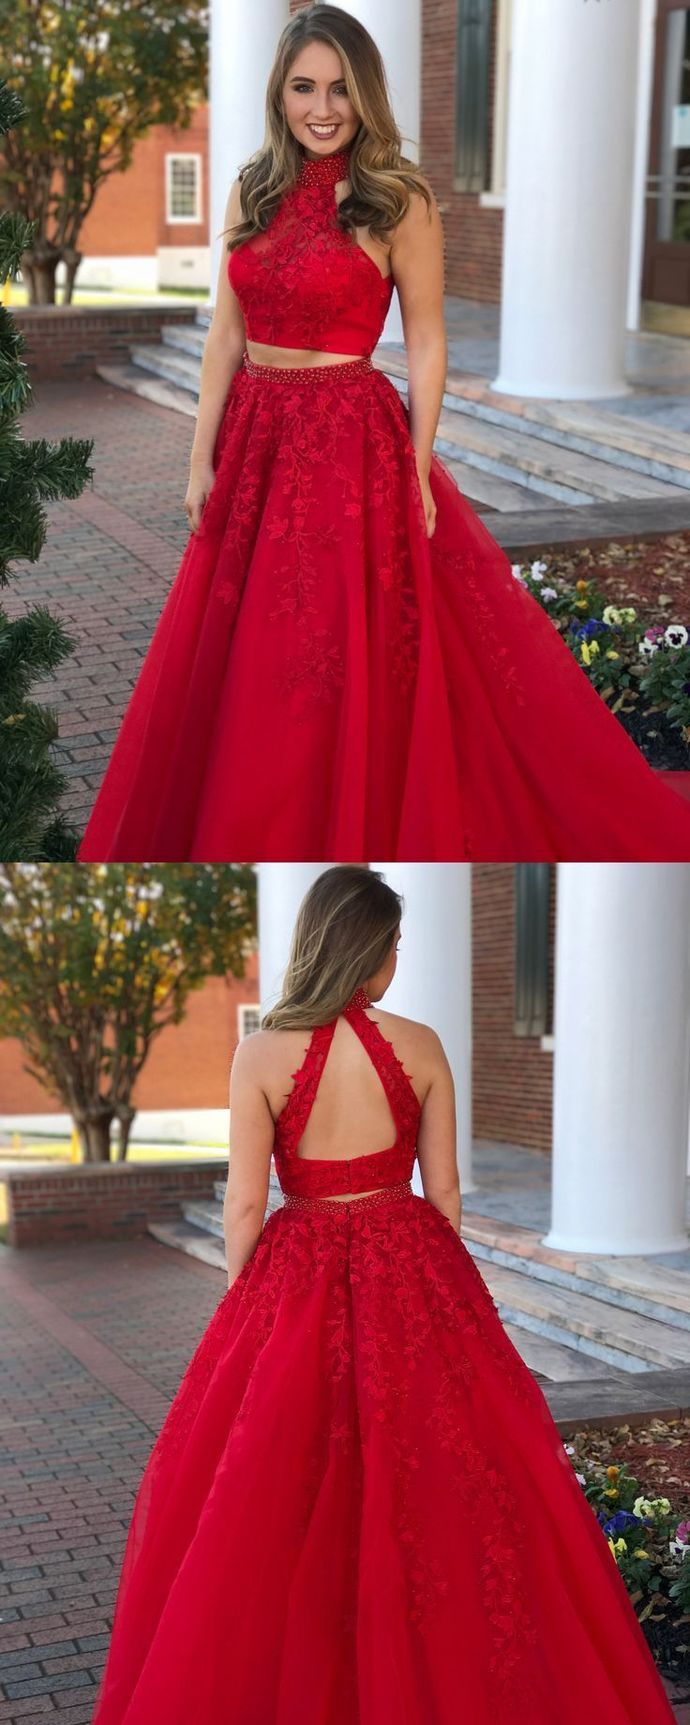 Sexy Two Pieces A-Line Prom Dresses,Long Prom Dresses,Cheap Prom Dresses,